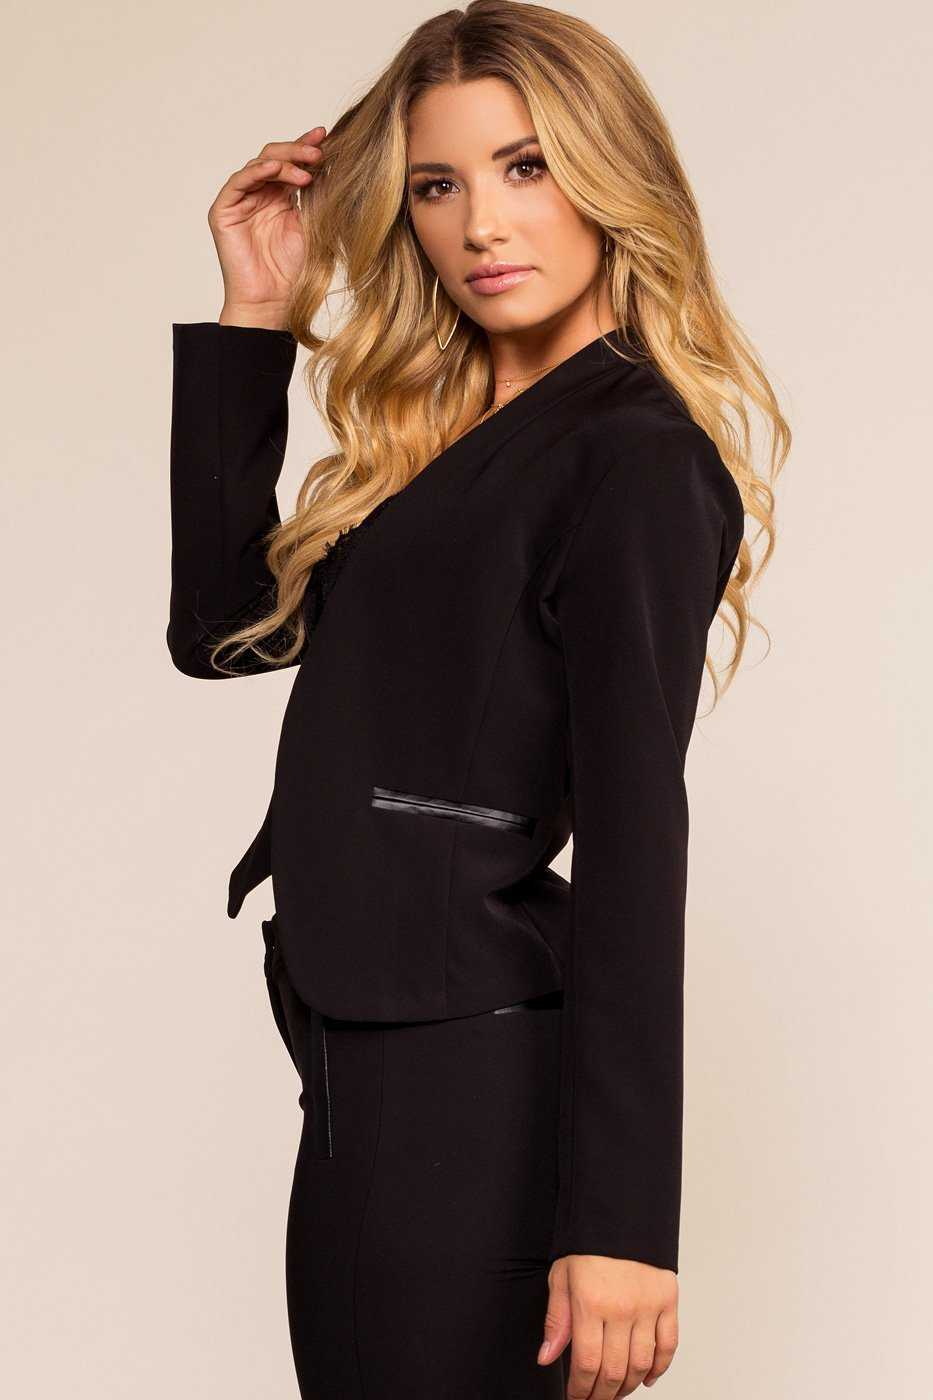 Jackets - Well Suited Blazer